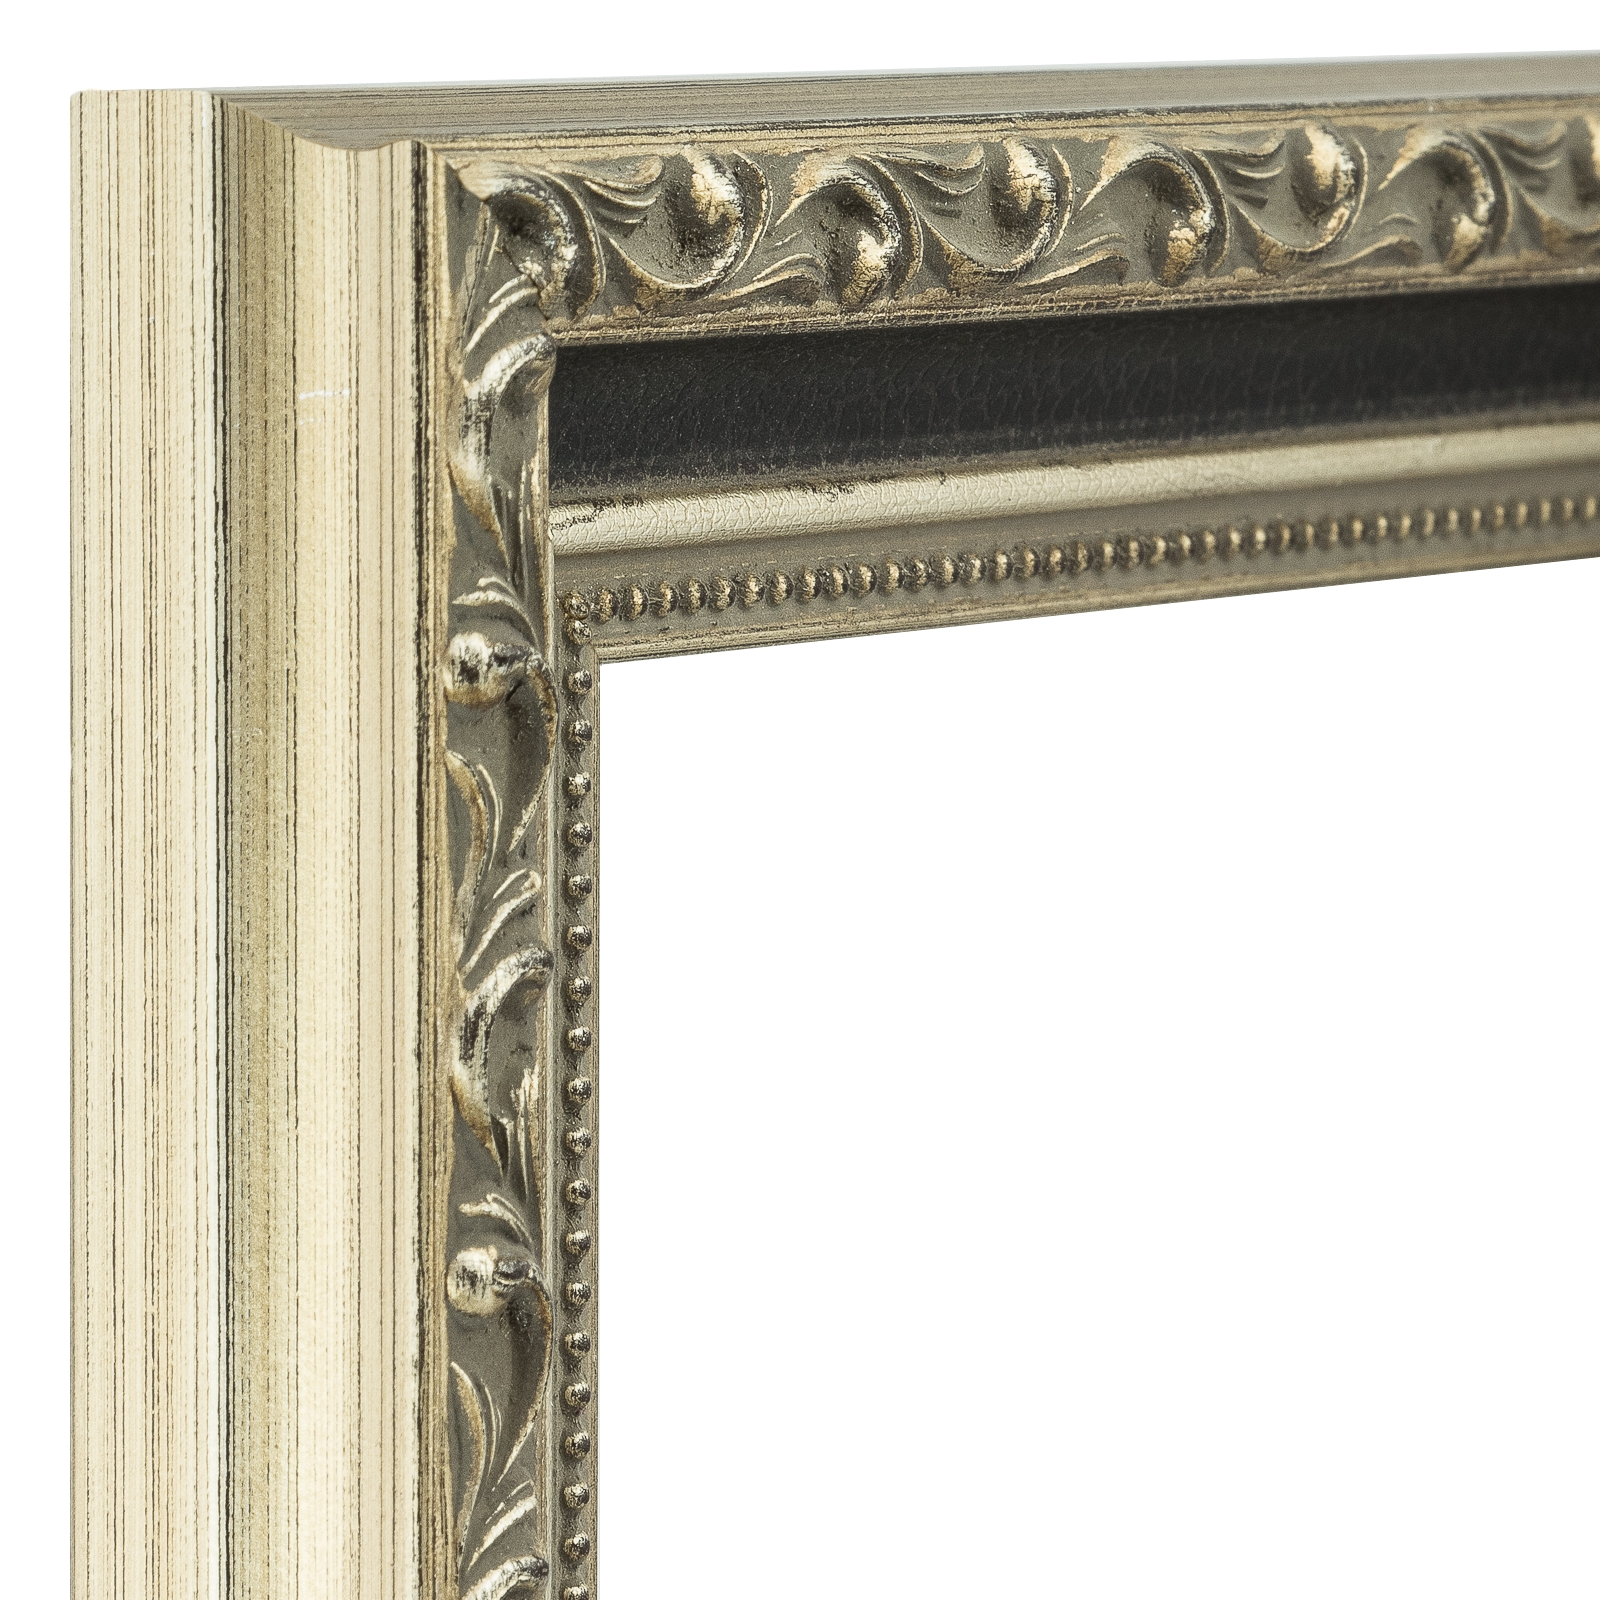 craig frames regence antique silver and black picture. Black Bedroom Furniture Sets. Home Design Ideas